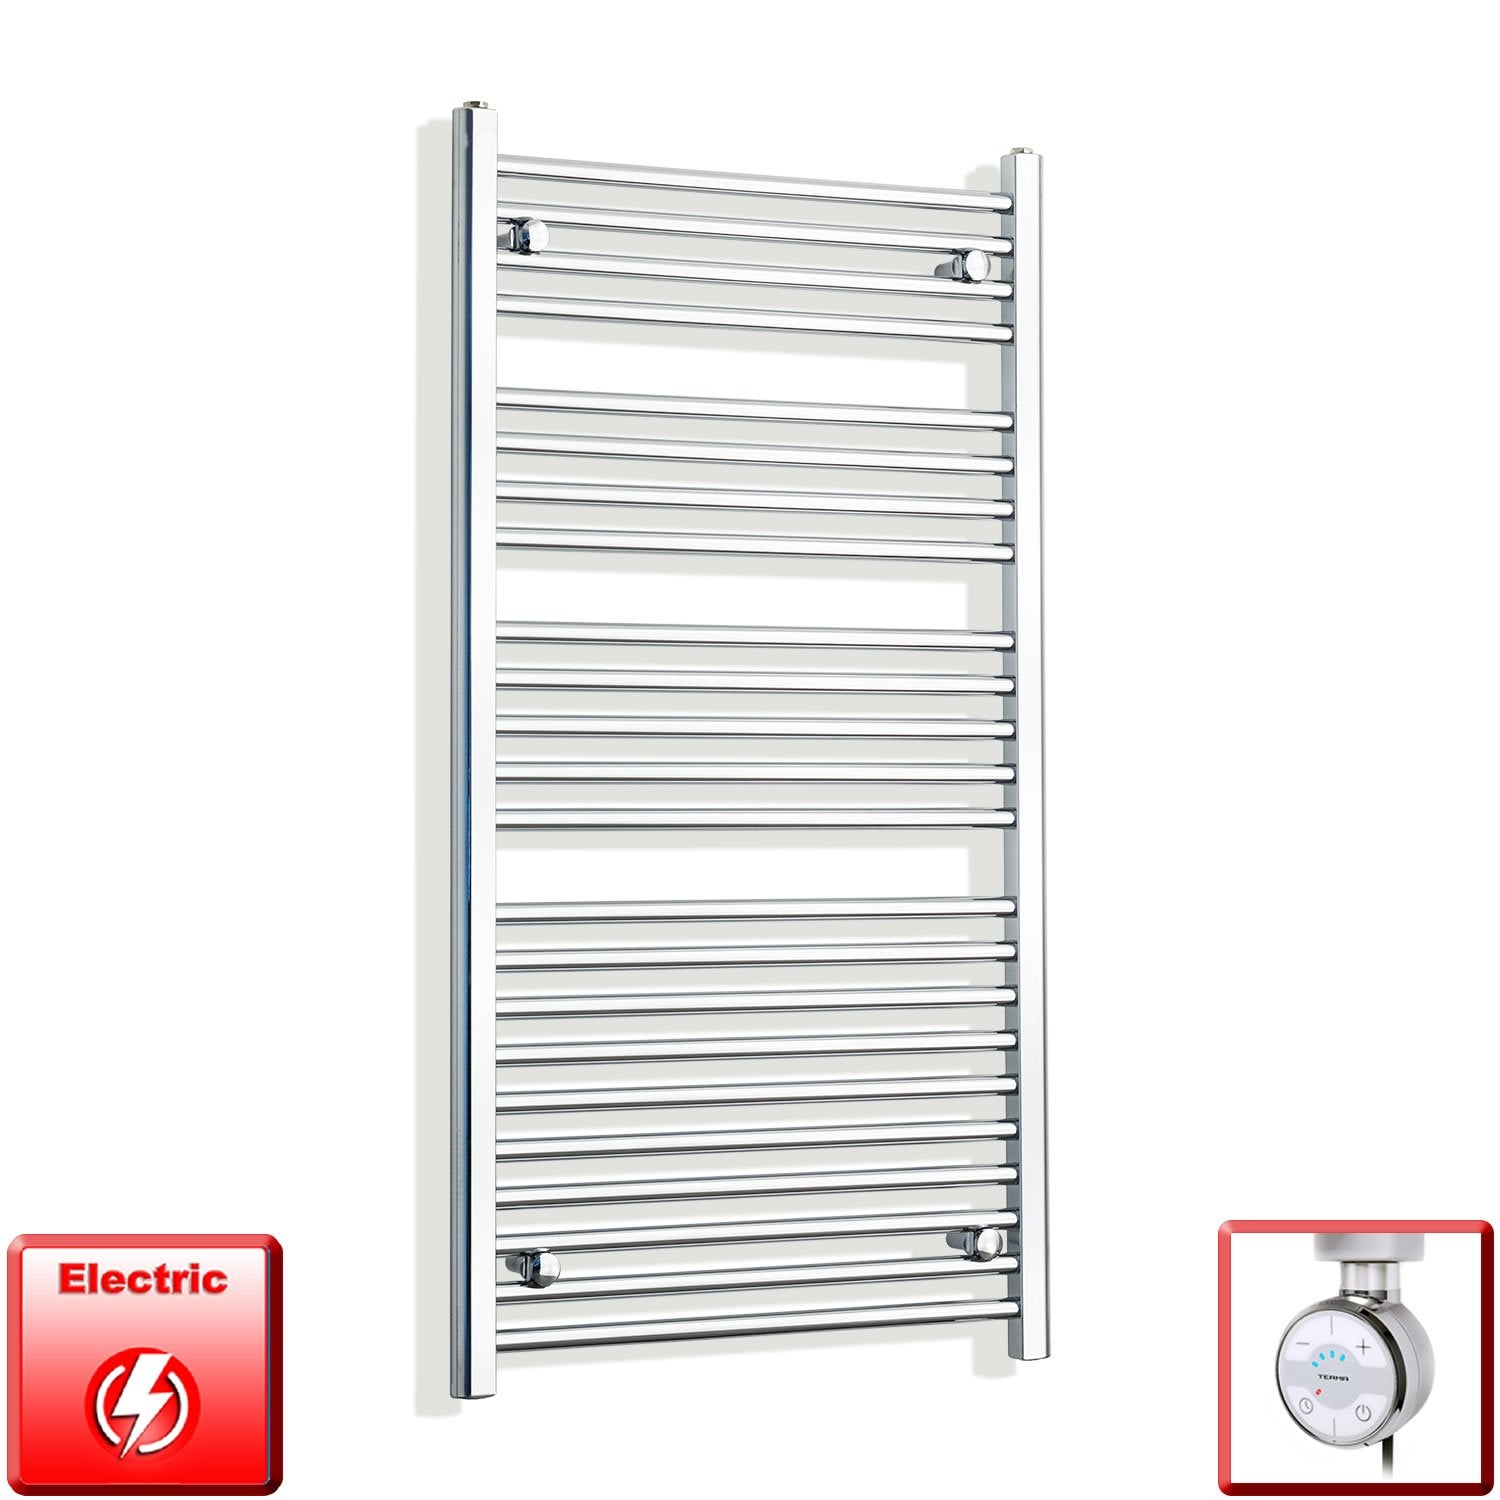 650mm Wide 1200mm High Flat Chrome Pre-Filled Electric Heated Towel Rail Radiator HTR,MOA Thermostatic Element